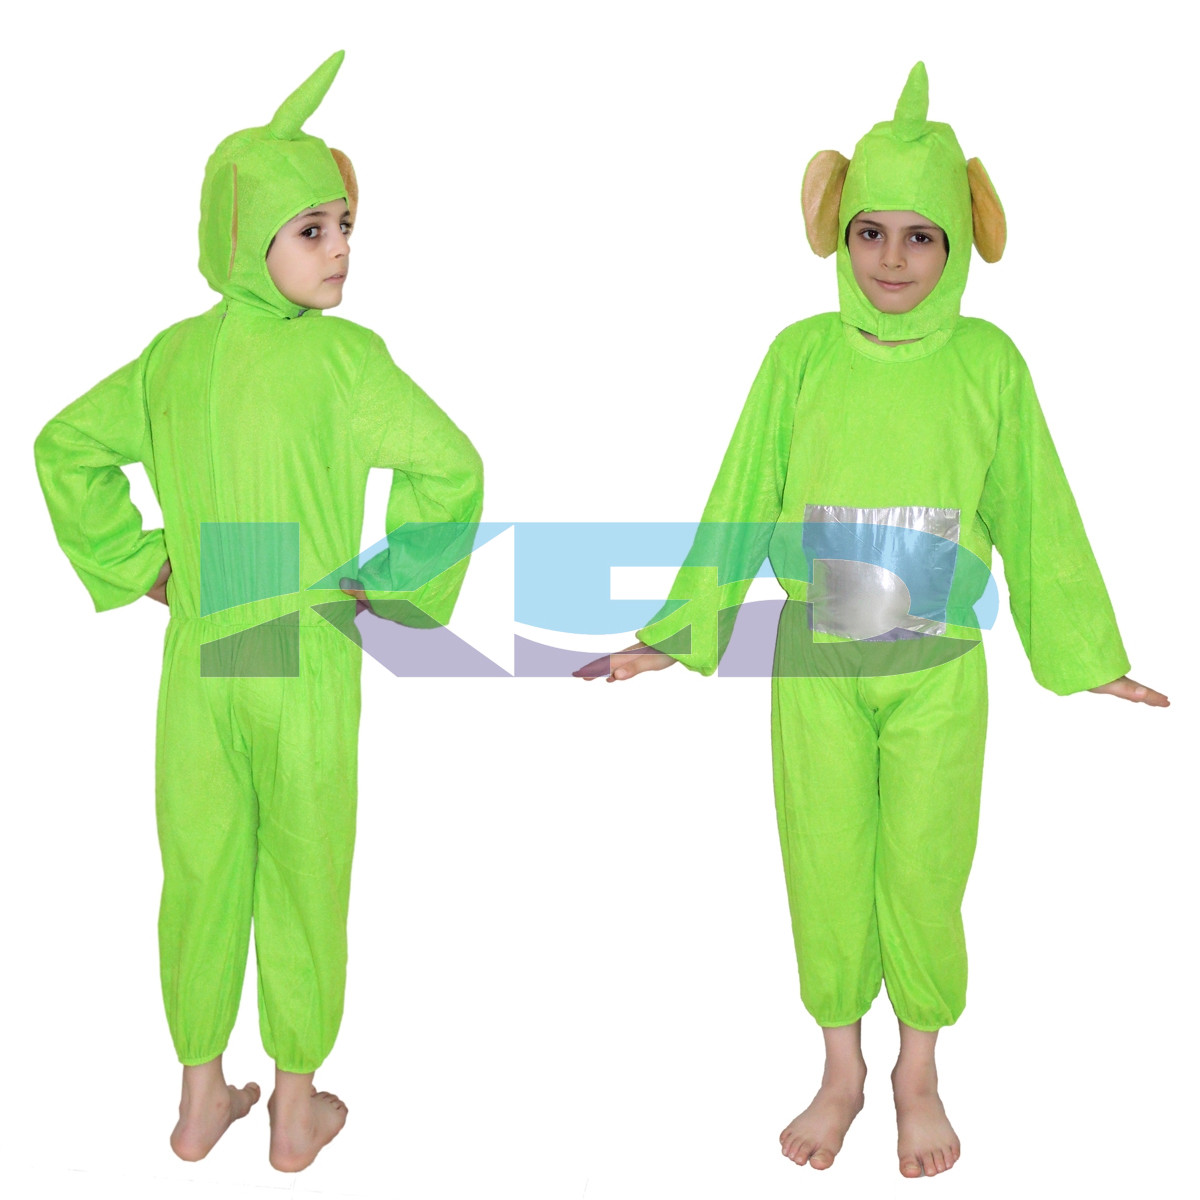 Teletubbies Green Cartoon Costume For School Annual function/Theme Party/Competition/Stage Shows/Birthday Party Dress